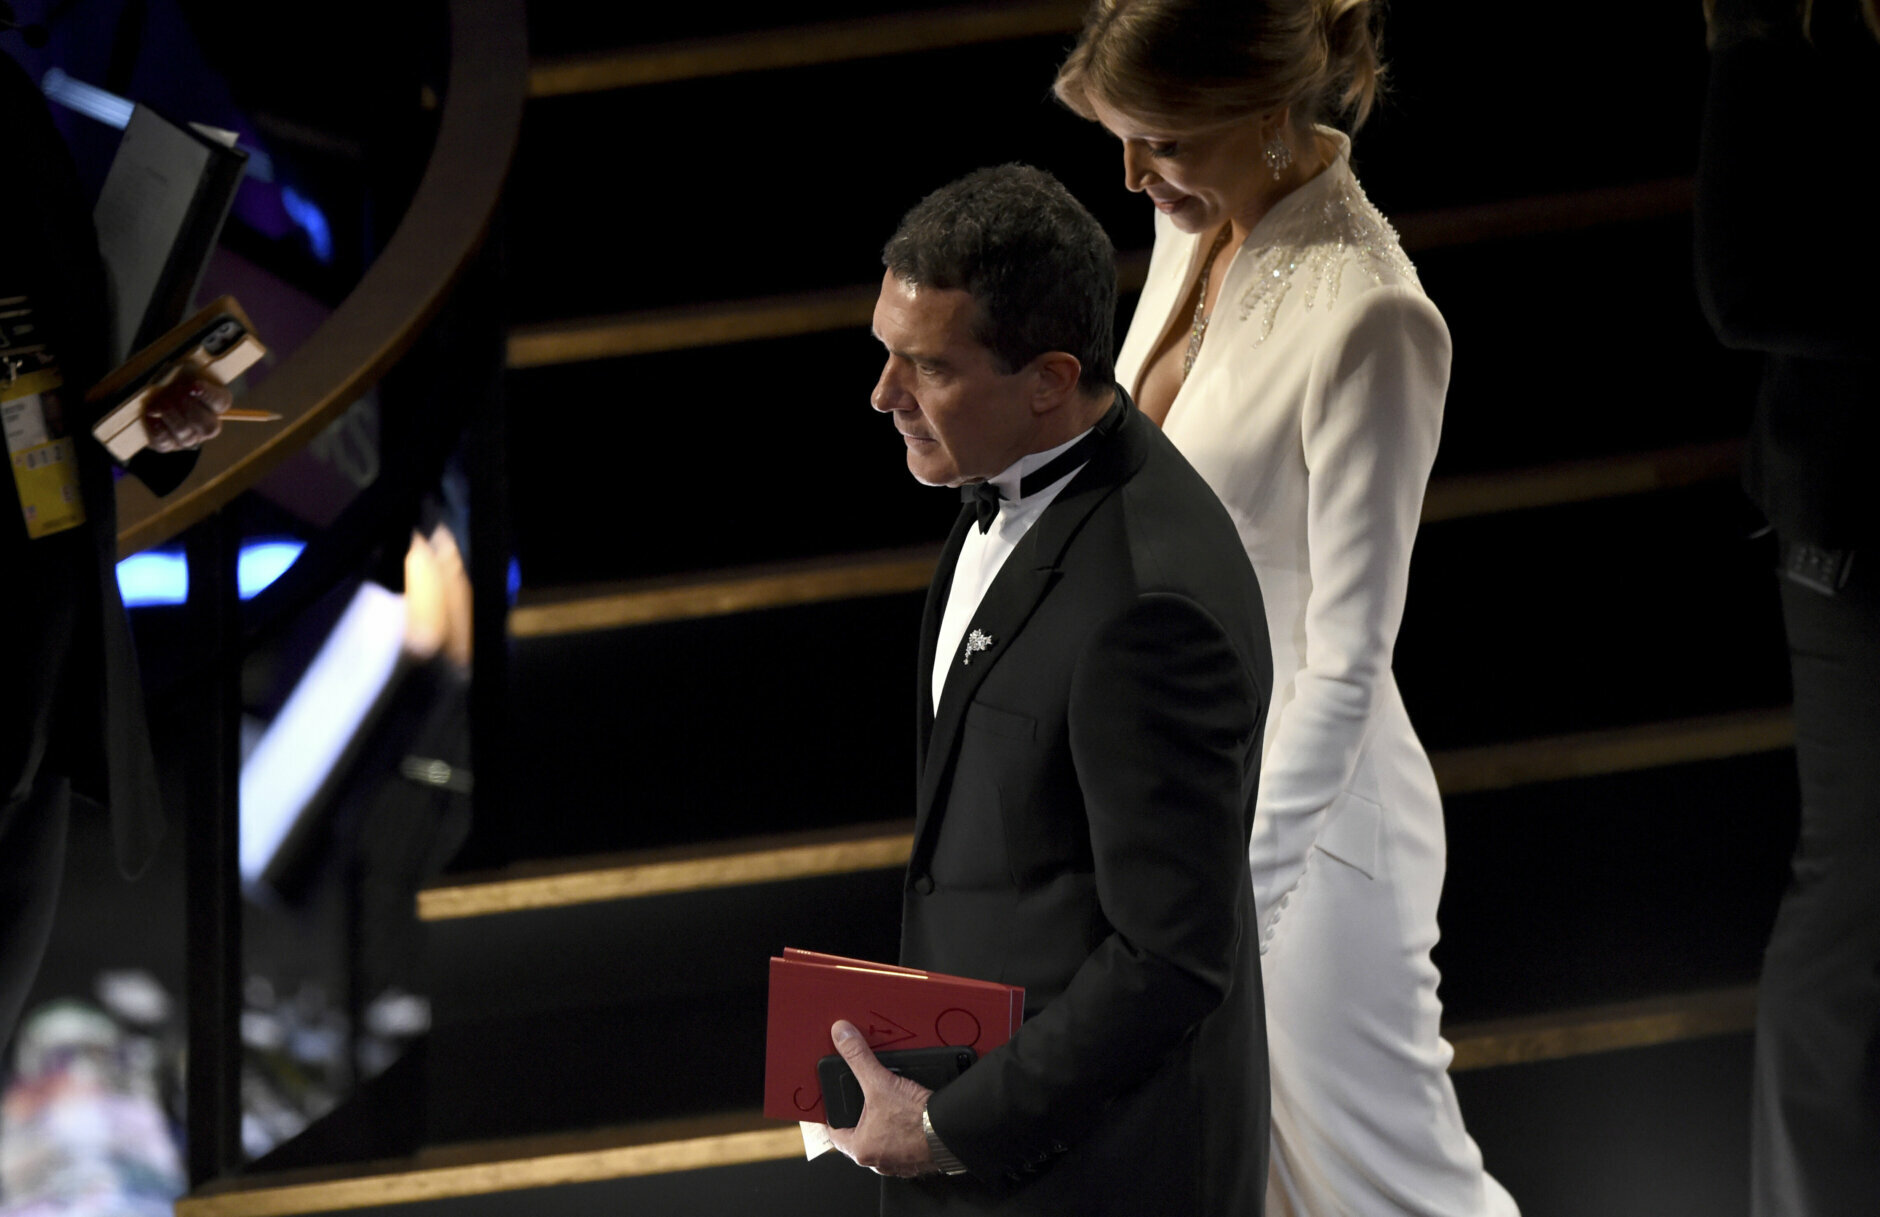 Antonio Banderas, left and Nicole Kimpel appear in the audience at the Oscars on Sunday, Feb. 9, 2020, at the Dolby Theatre in Los Angeles. (AP Photo/Chris Pizzello)